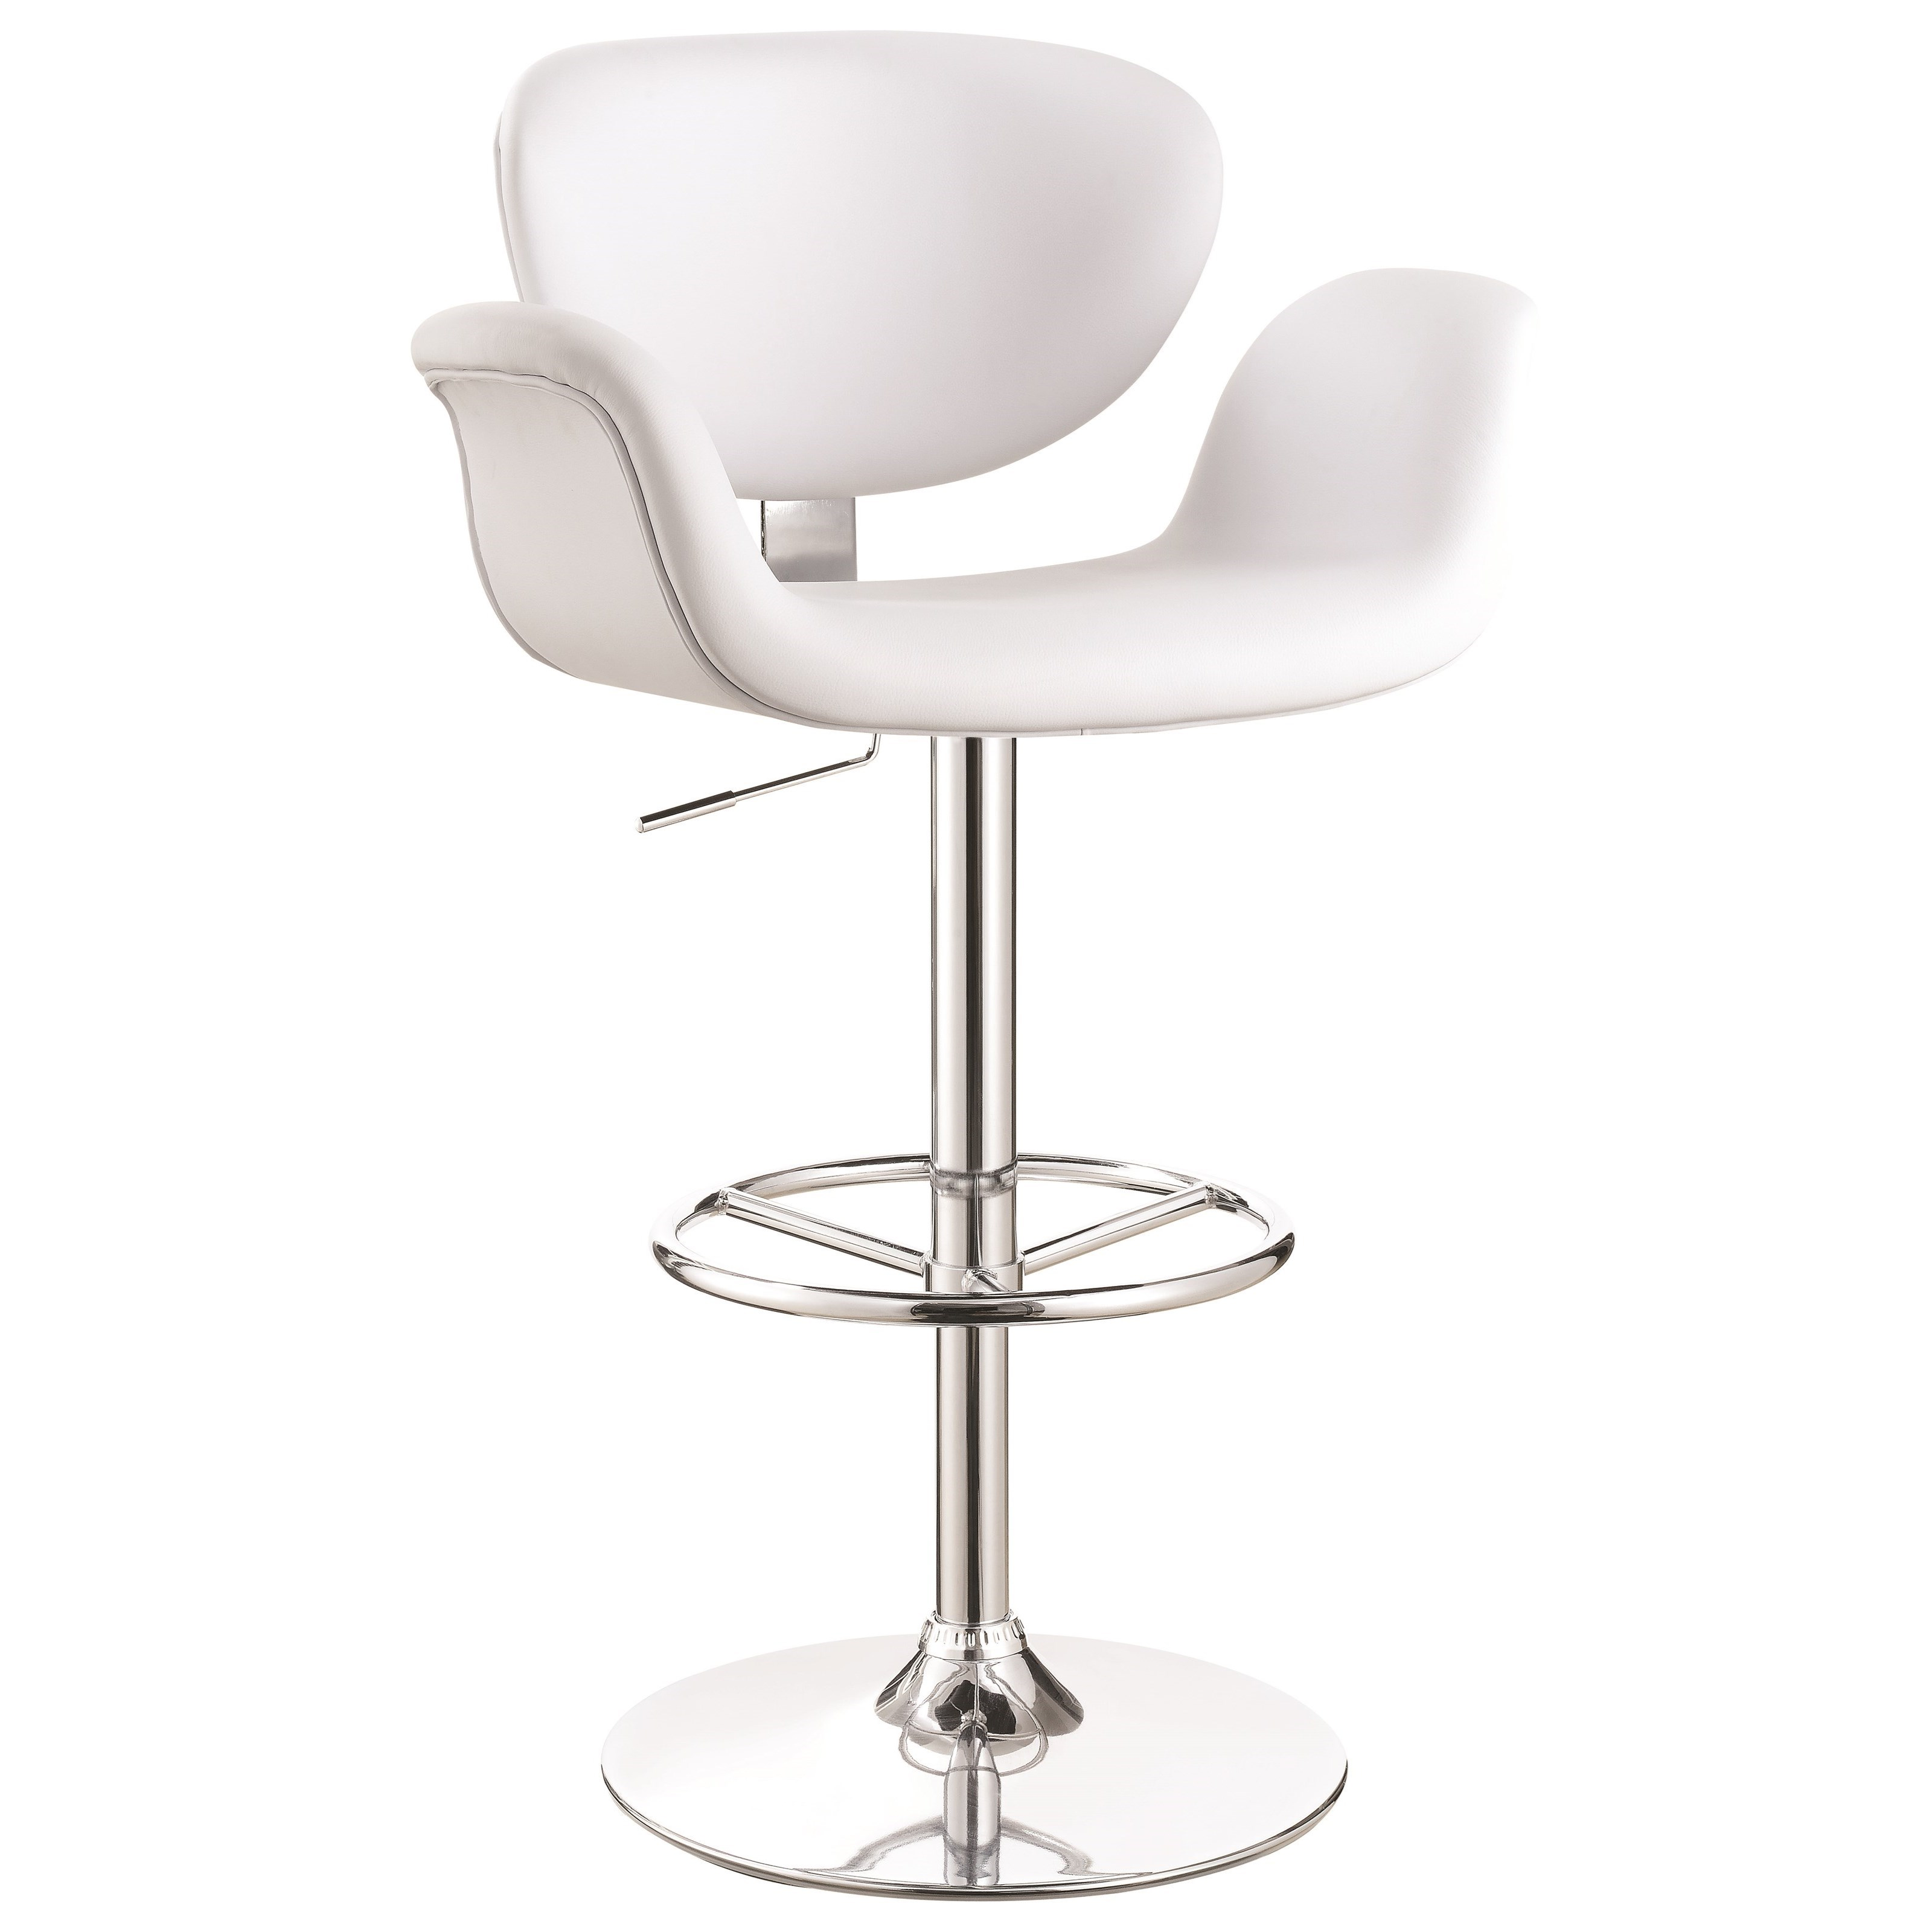 Coaster Dining Chairs and Bar Stools Bar Stool - Item Number: 100614